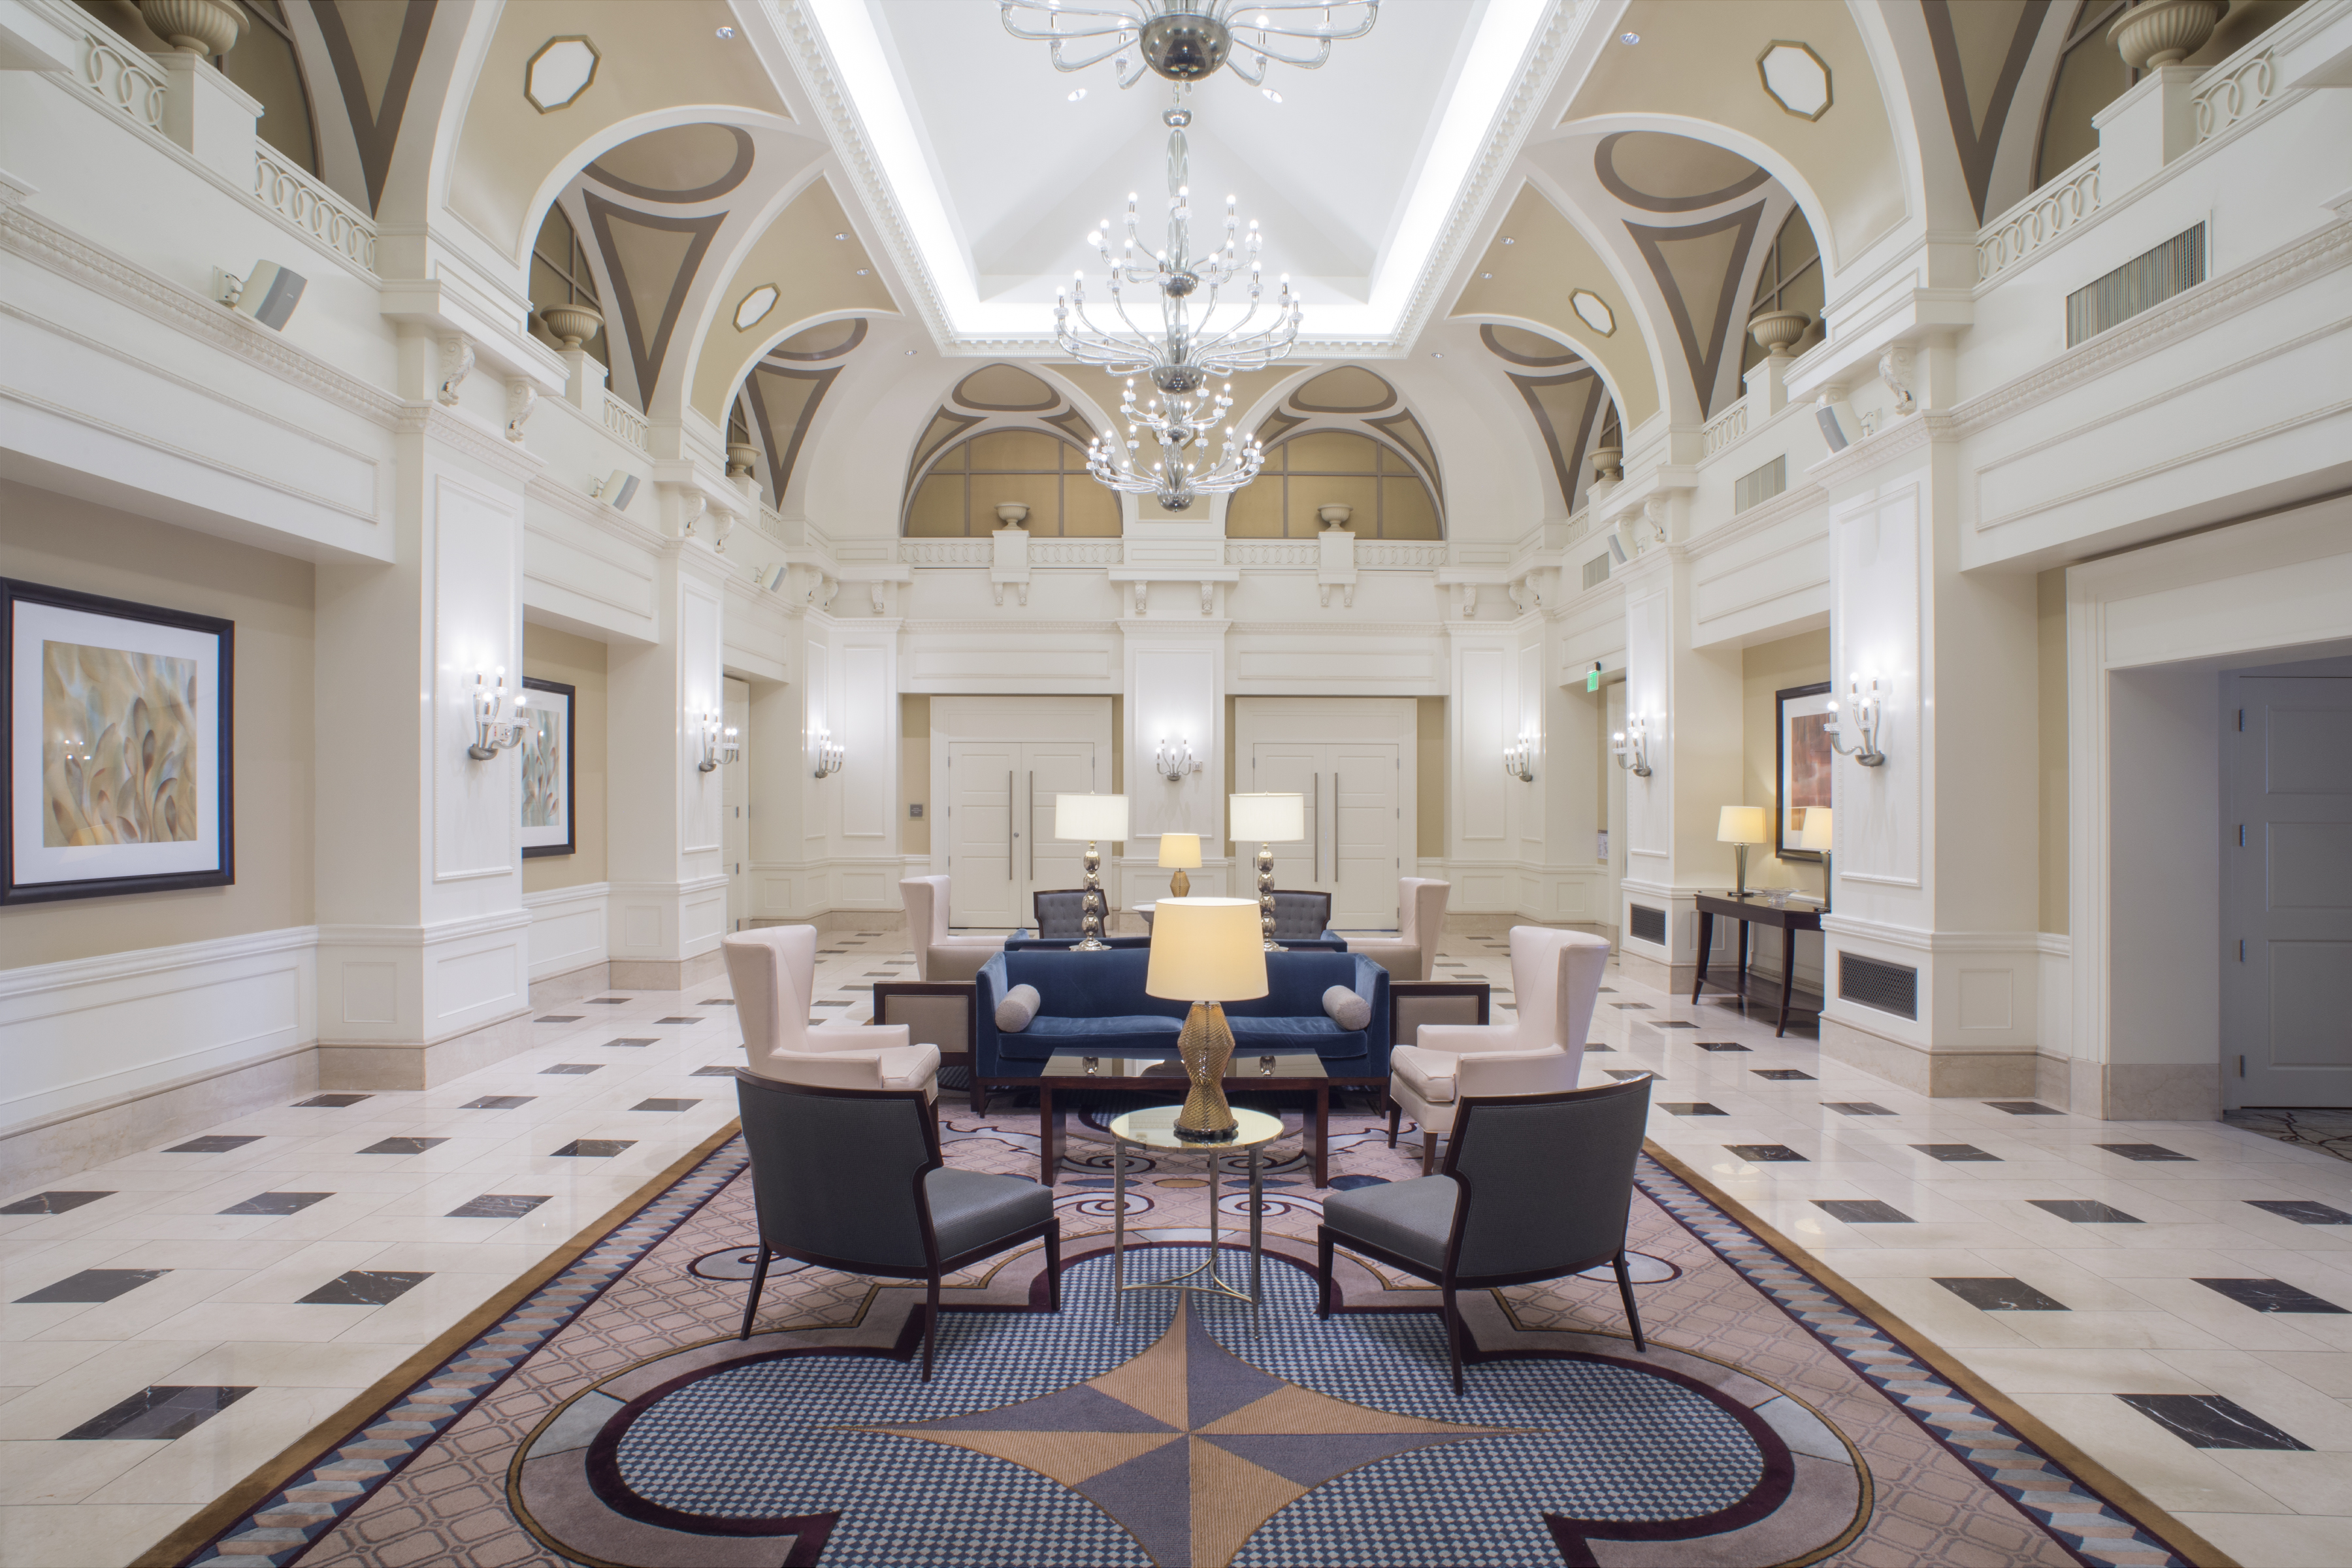 westin book cadillac hotel detroit michigan. Cars Review. Best American Auto & Cars Review